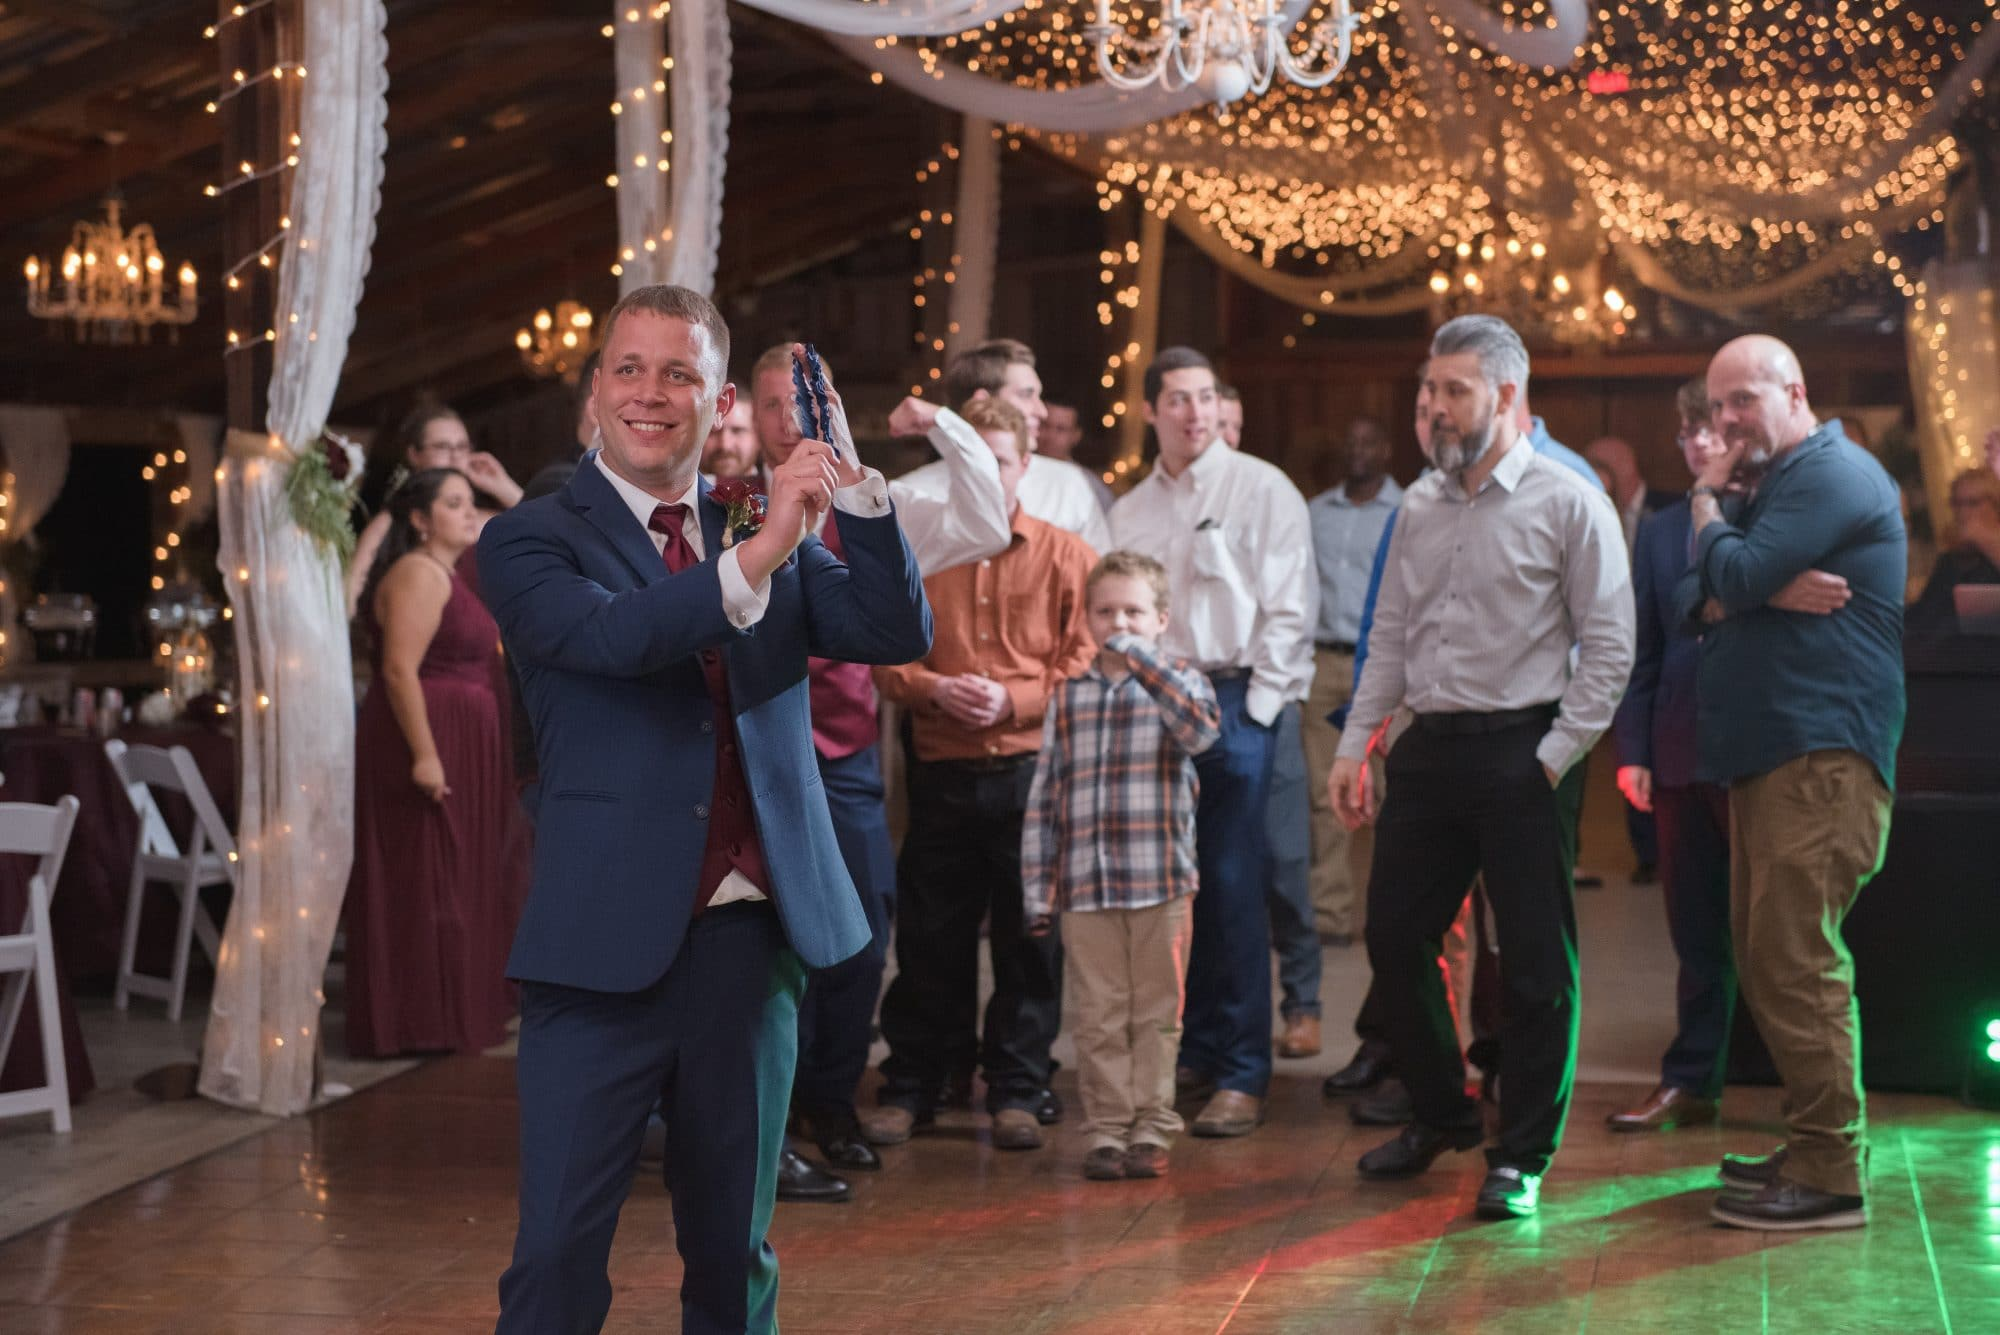 Todd about to throw the garter.